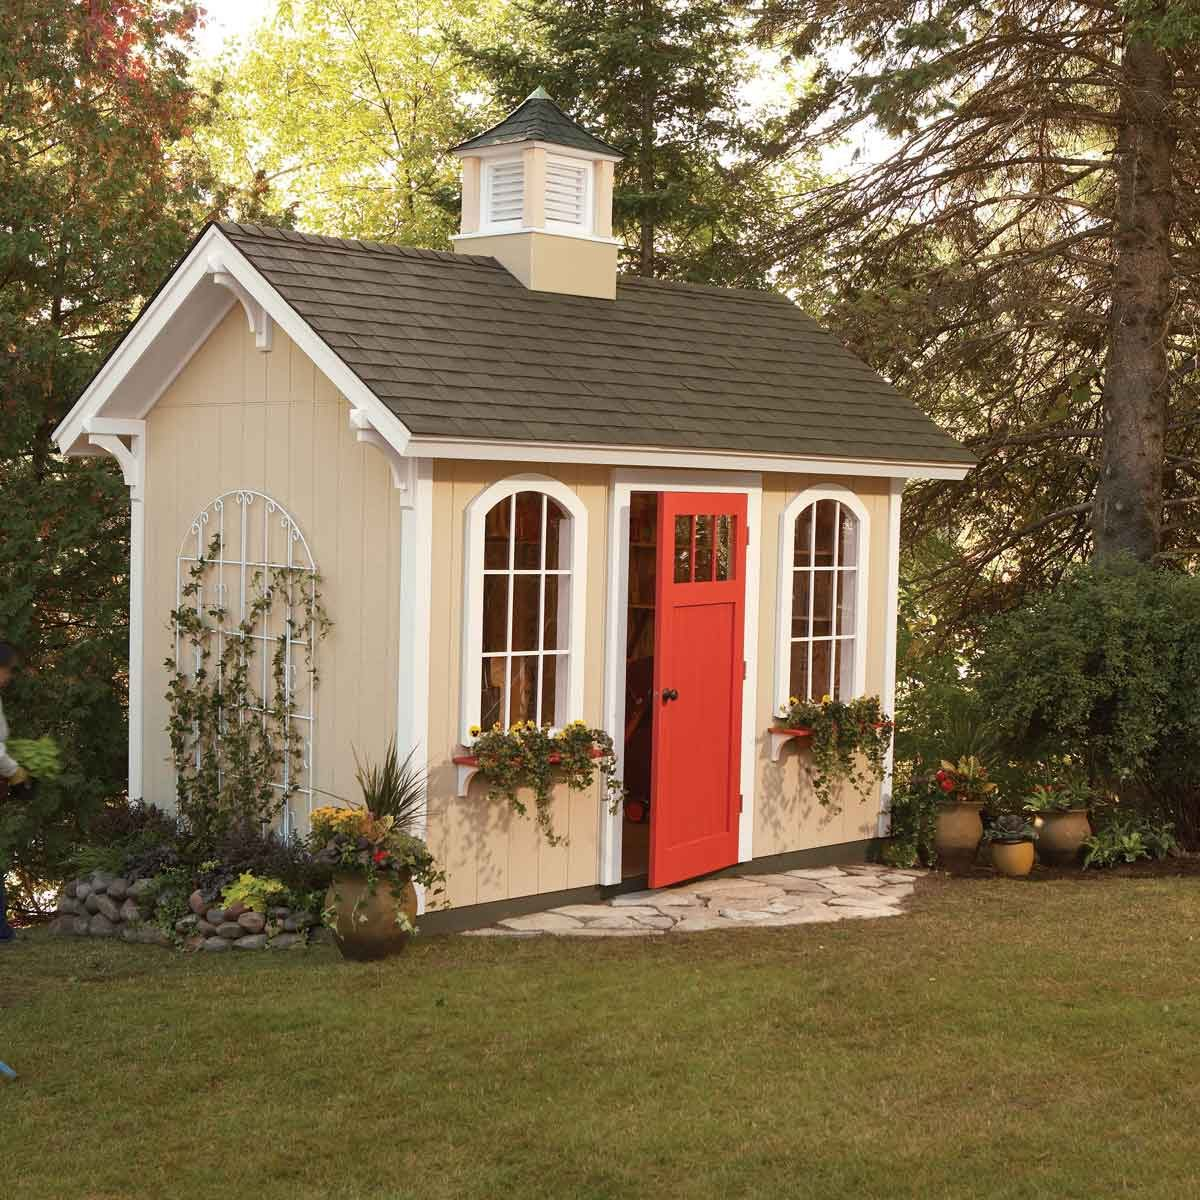 How To Build A Shed On The Cheap Diy The Family Handyman